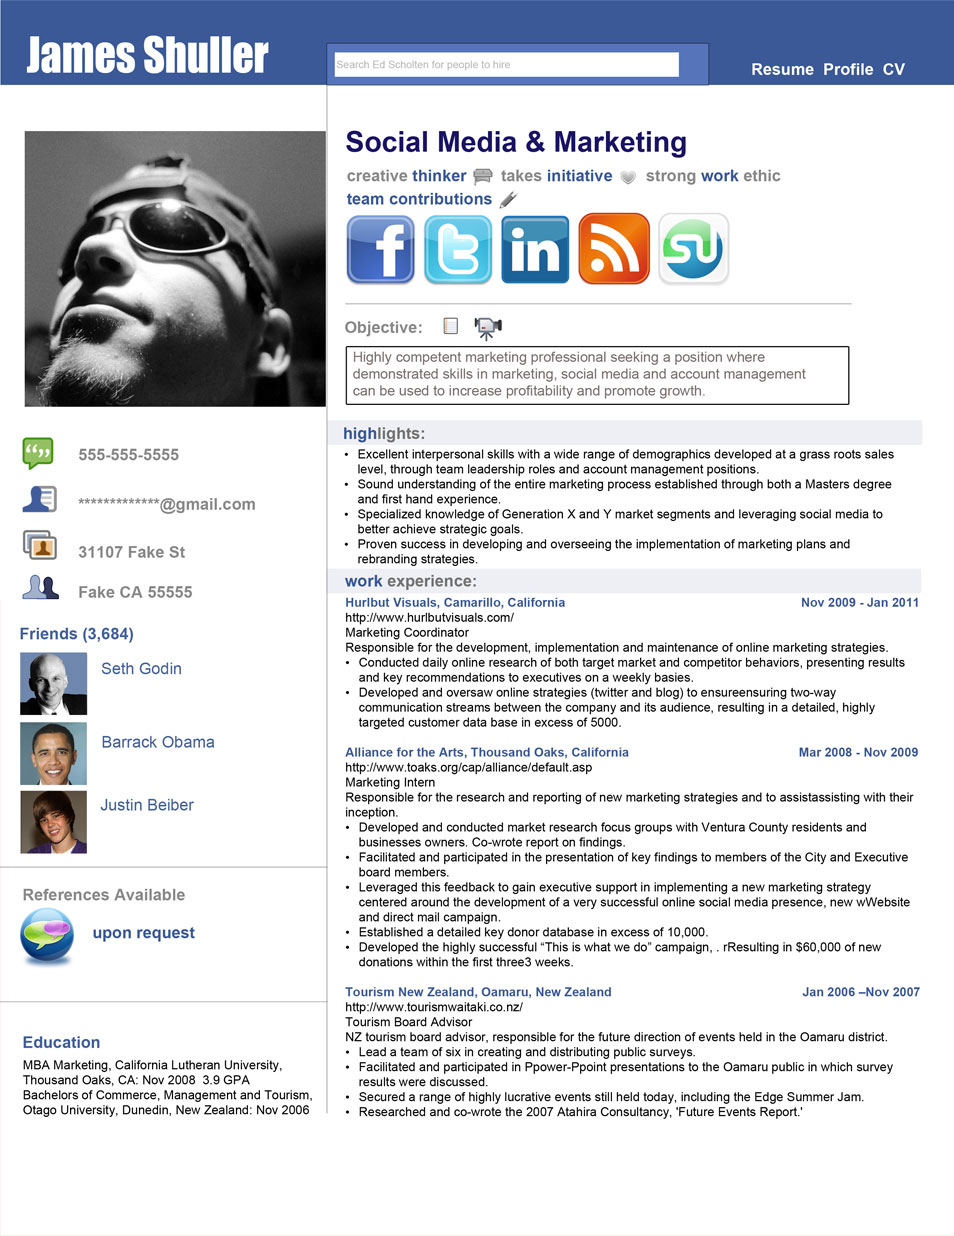 Opposenewapstandardsus  Surprising  Creative Cvresume Design Inspiration With Interesting Resume  Social Network Adv With Delectable Google Resume Also Creative Resume Templates In Addition How To Make A Resume On Word And Resume Wizard As Well As Call Center Resume Additionally Best Fonts For Resume From Cssauthorcom With Opposenewapstandardsus  Interesting  Creative Cvresume Design Inspiration With Delectable Resume  Social Network Adv And Surprising Google Resume Also Creative Resume Templates In Addition How To Make A Resume On Word From Cssauthorcom